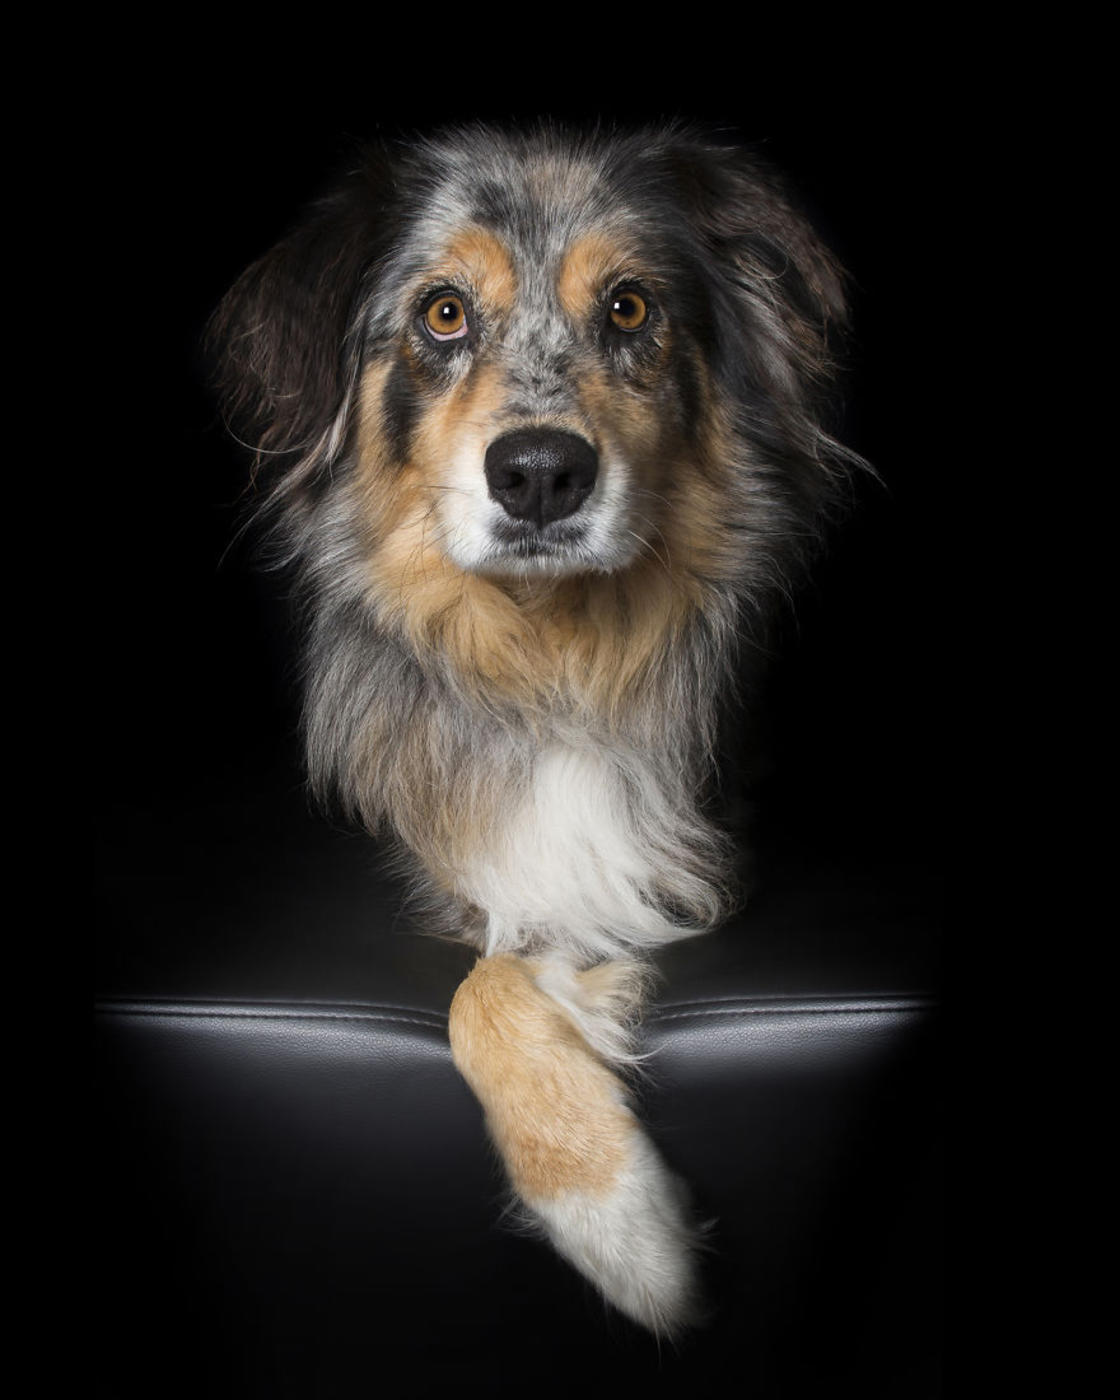 Perfect Imperfection – Photographer captures adorable portraits of rescued dogs